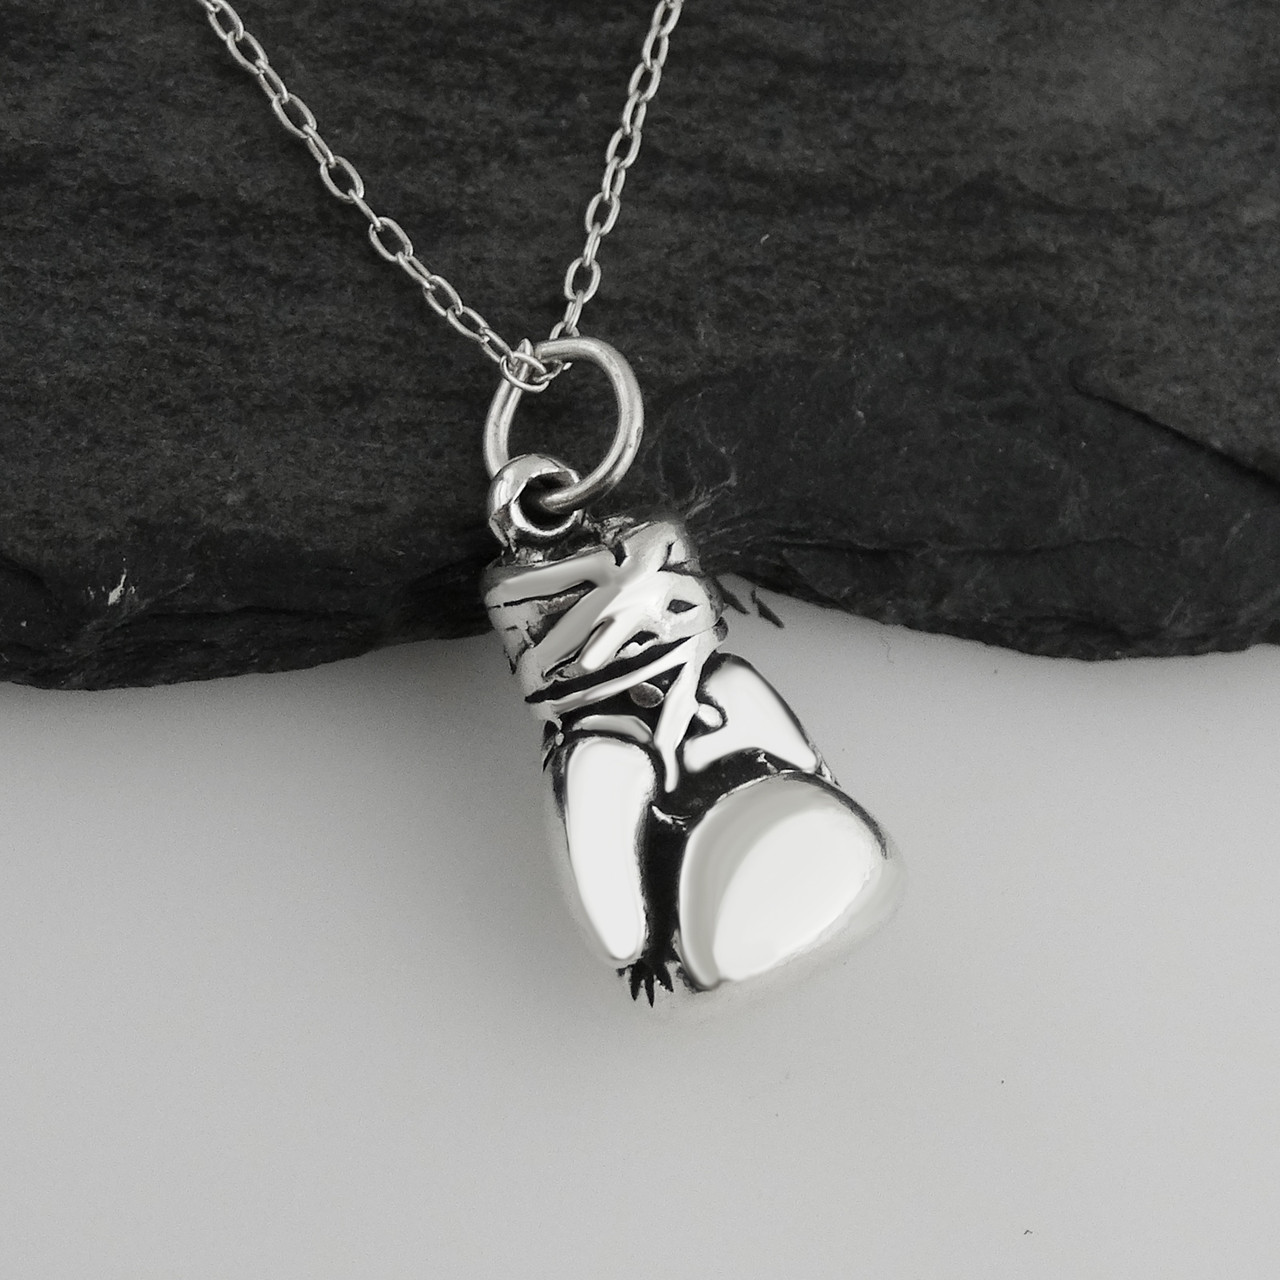 Boxing Glove Necklace - Sterling Silver